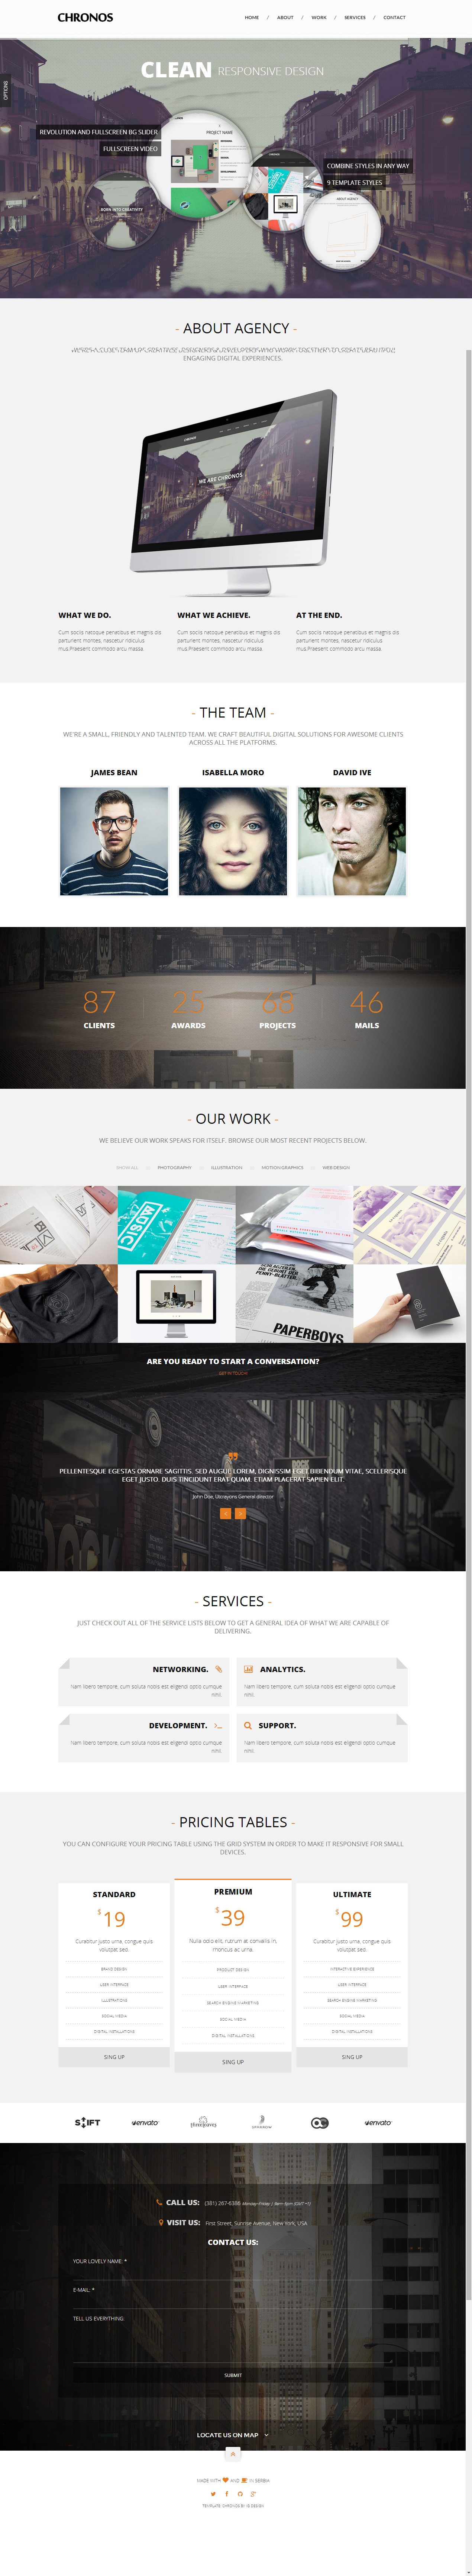 65+ Best Responsive One Page HTML5 Templates 2014 - Responsive Miracle